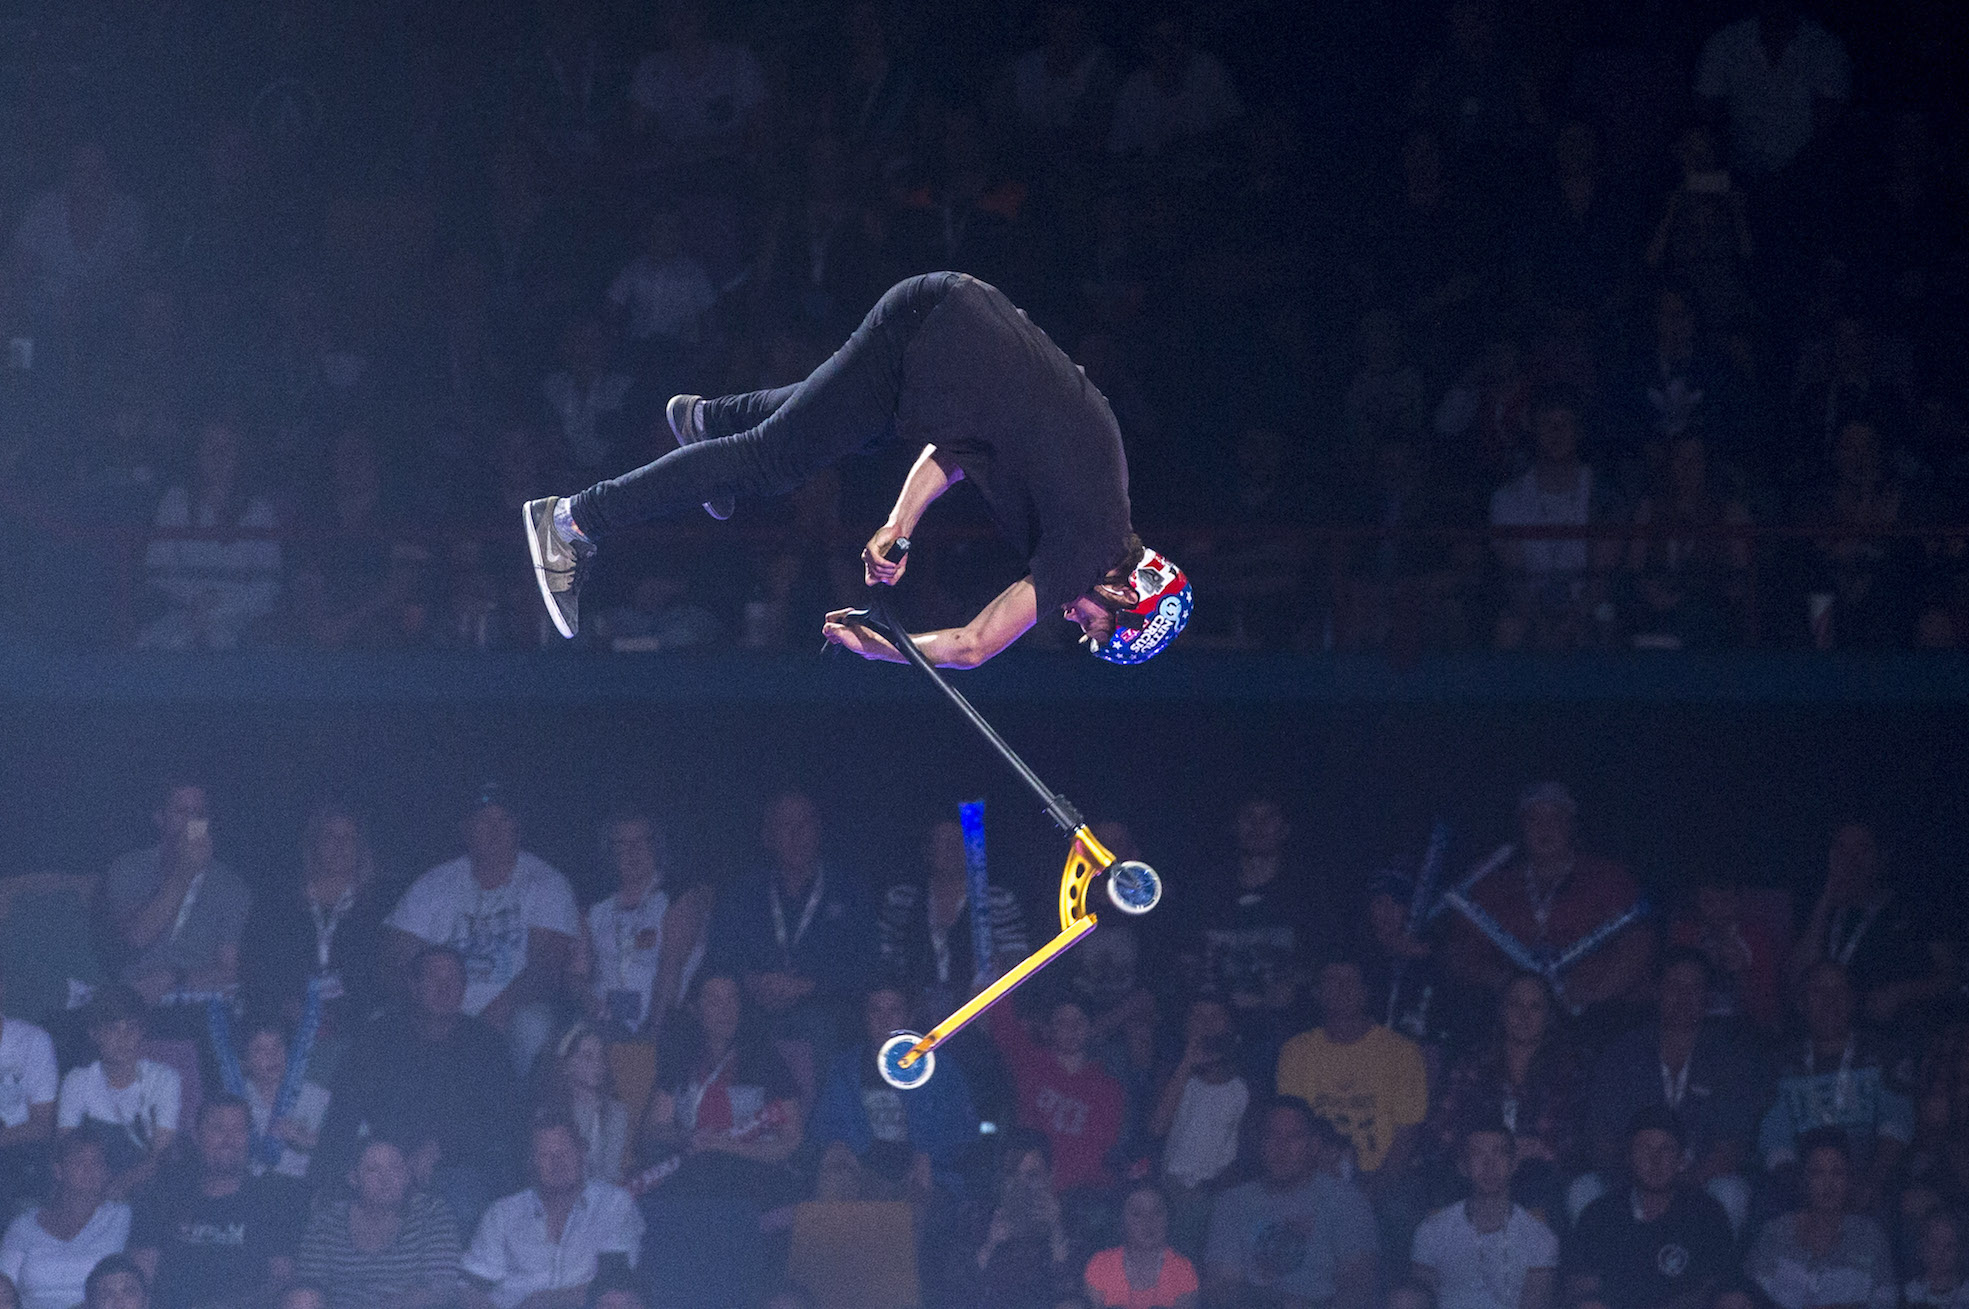 One of the world's most naturally talented Action Sports athletes. We interview Ryan Williams about what we can expect from the Nitro Circus Live SA tour.